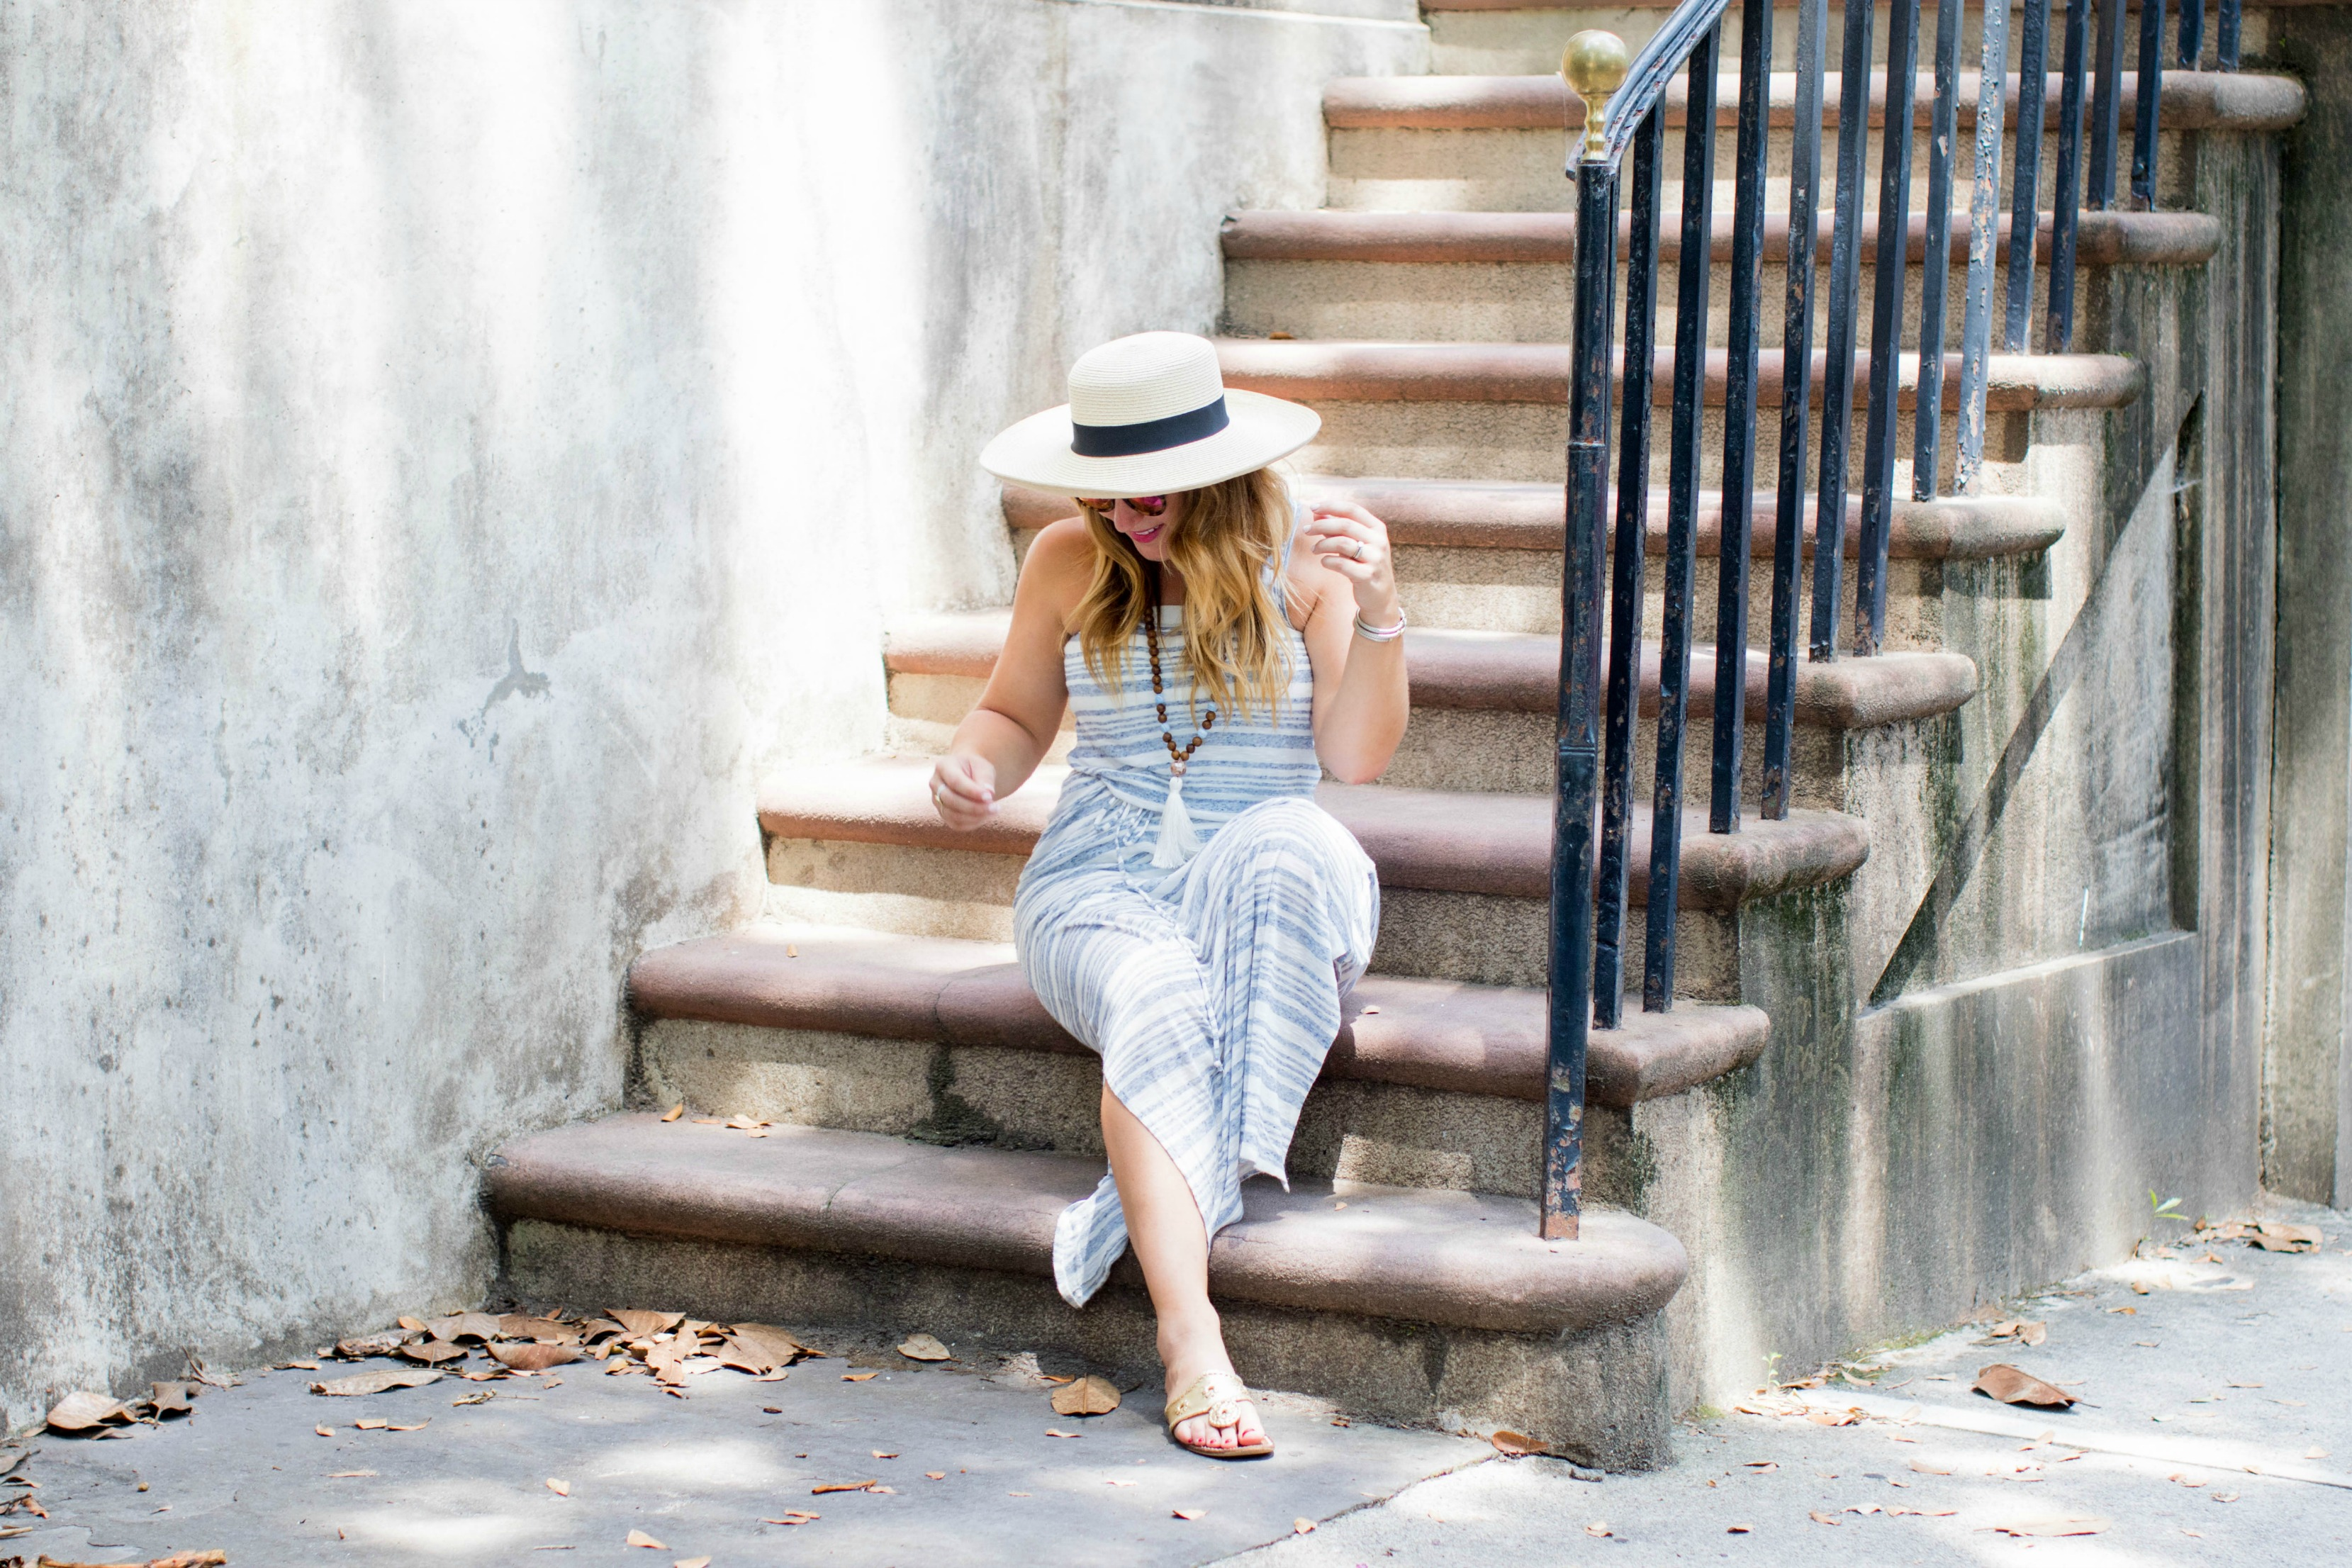 Travel Wardrobe with Vacay Style by fashion blogger Amy of Coffee Beans and Bobby Pins